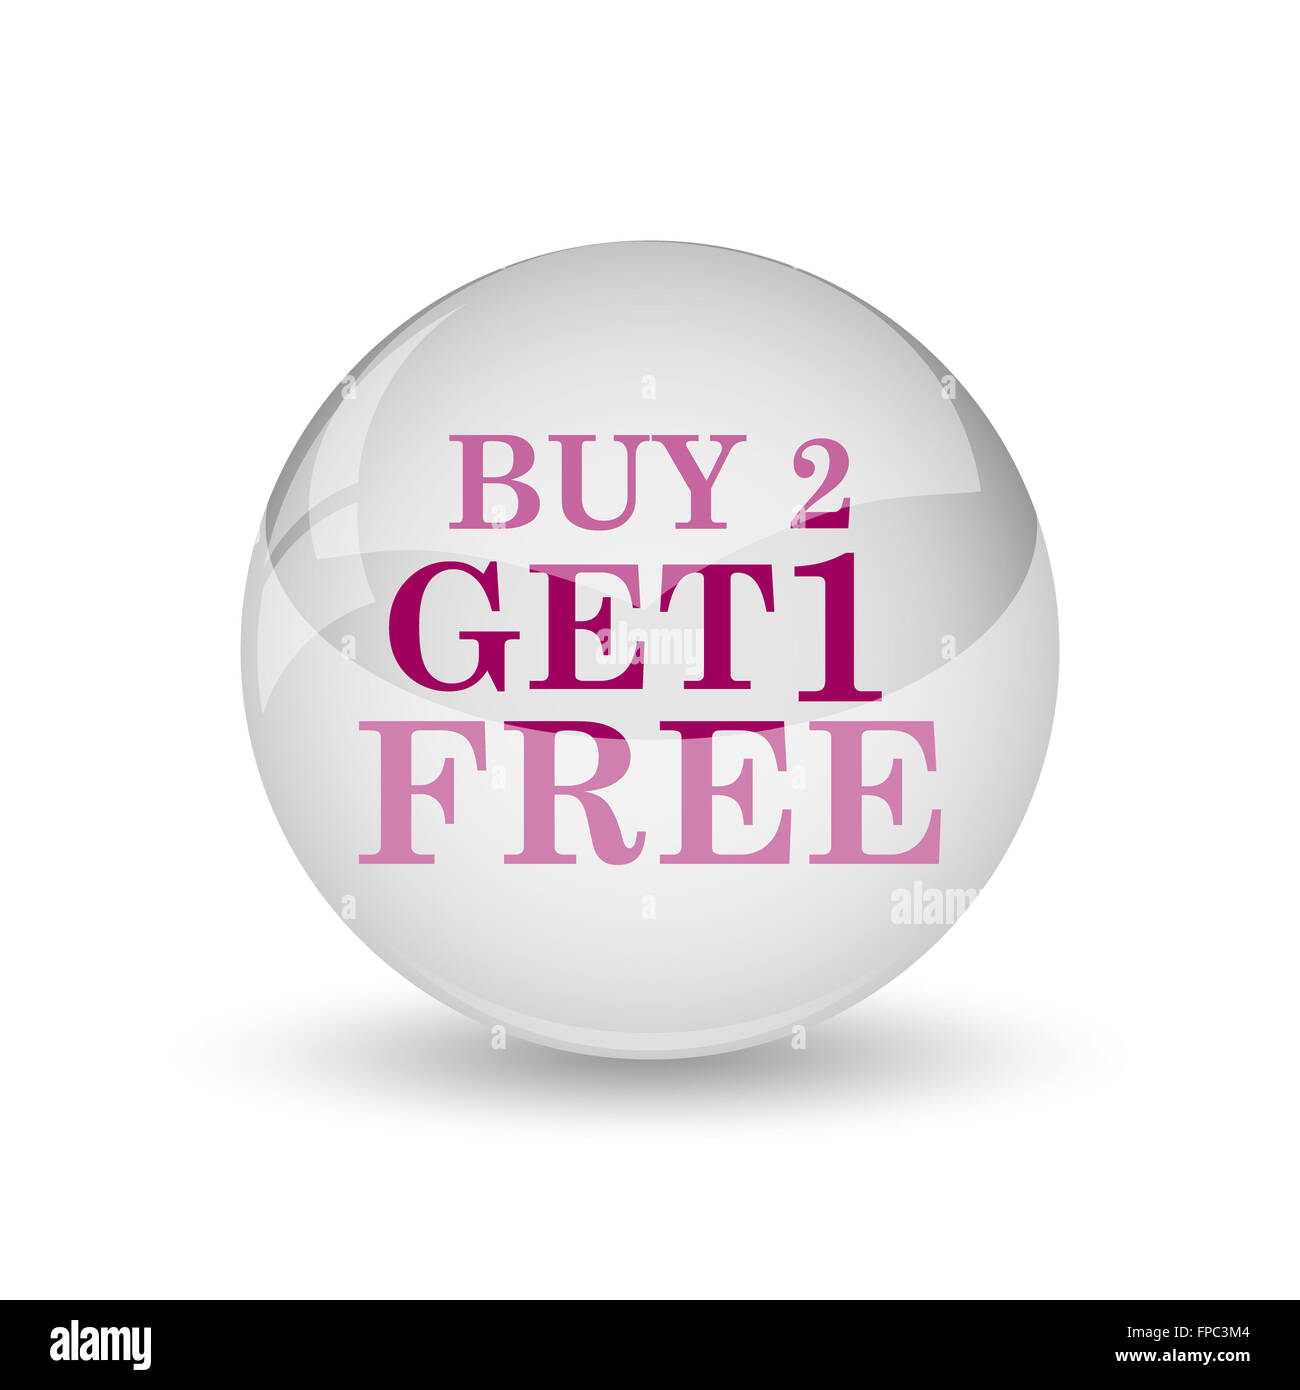 Buy 2 get 1 free offer icon  Internet button on white background